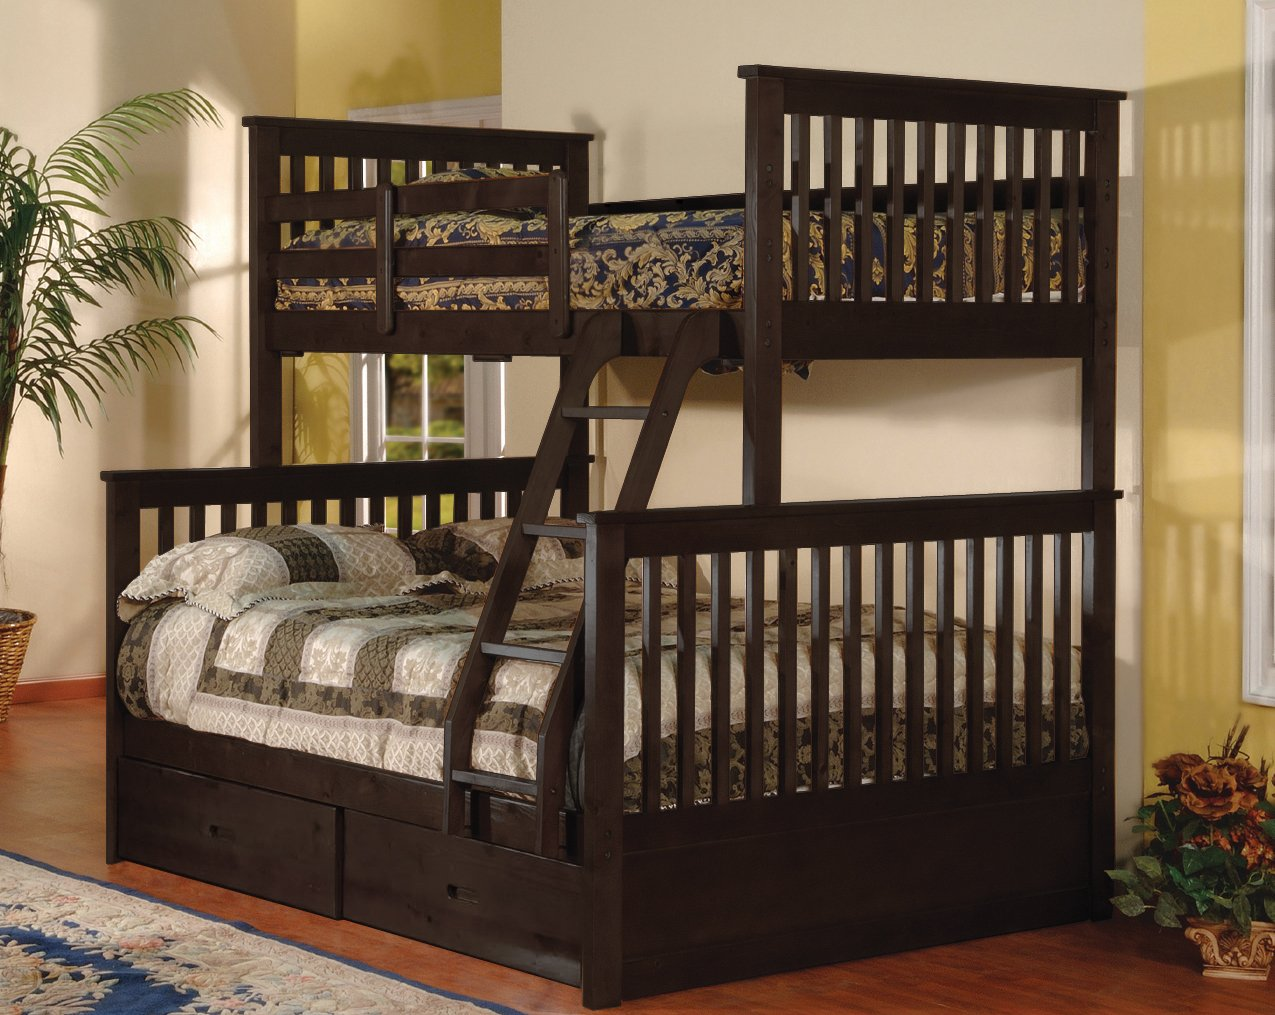 amazoncom twin over full bunk bed with drawers espresso color kitchen u0026 dining